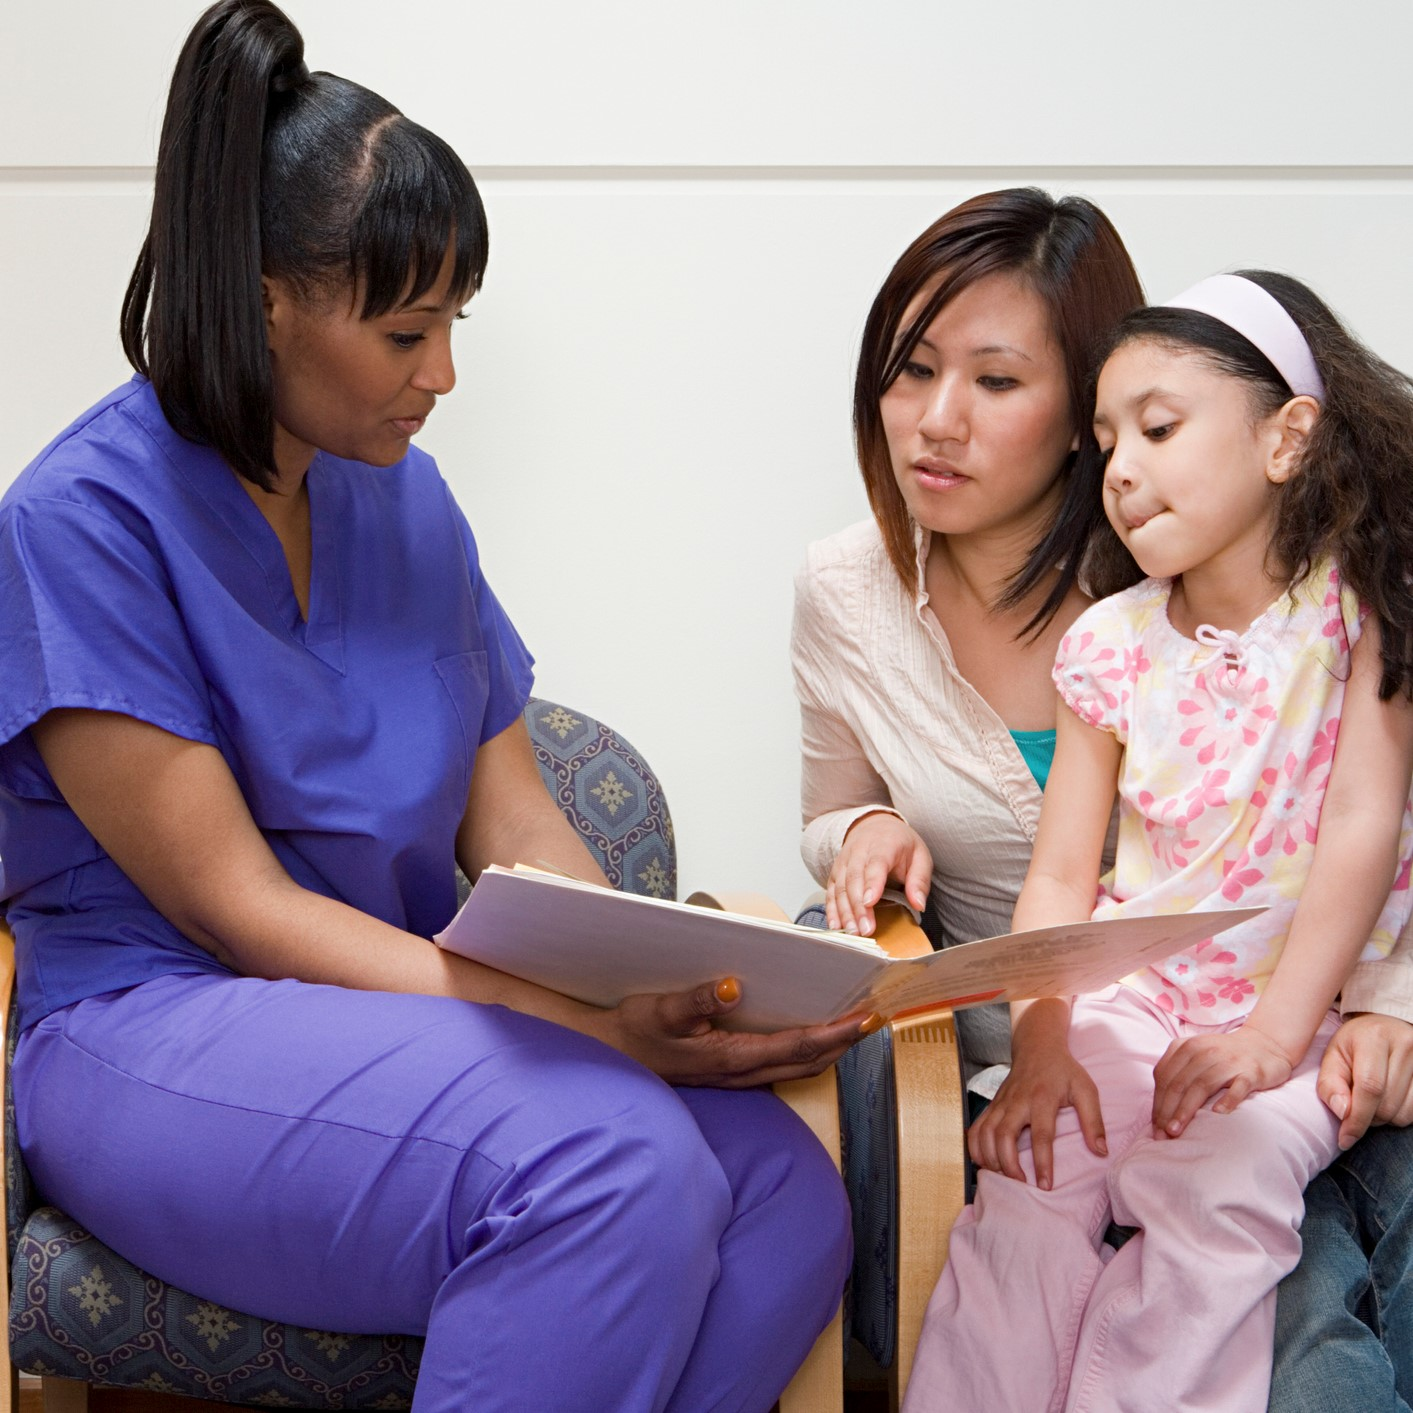 Nurse talking to mother and daughter